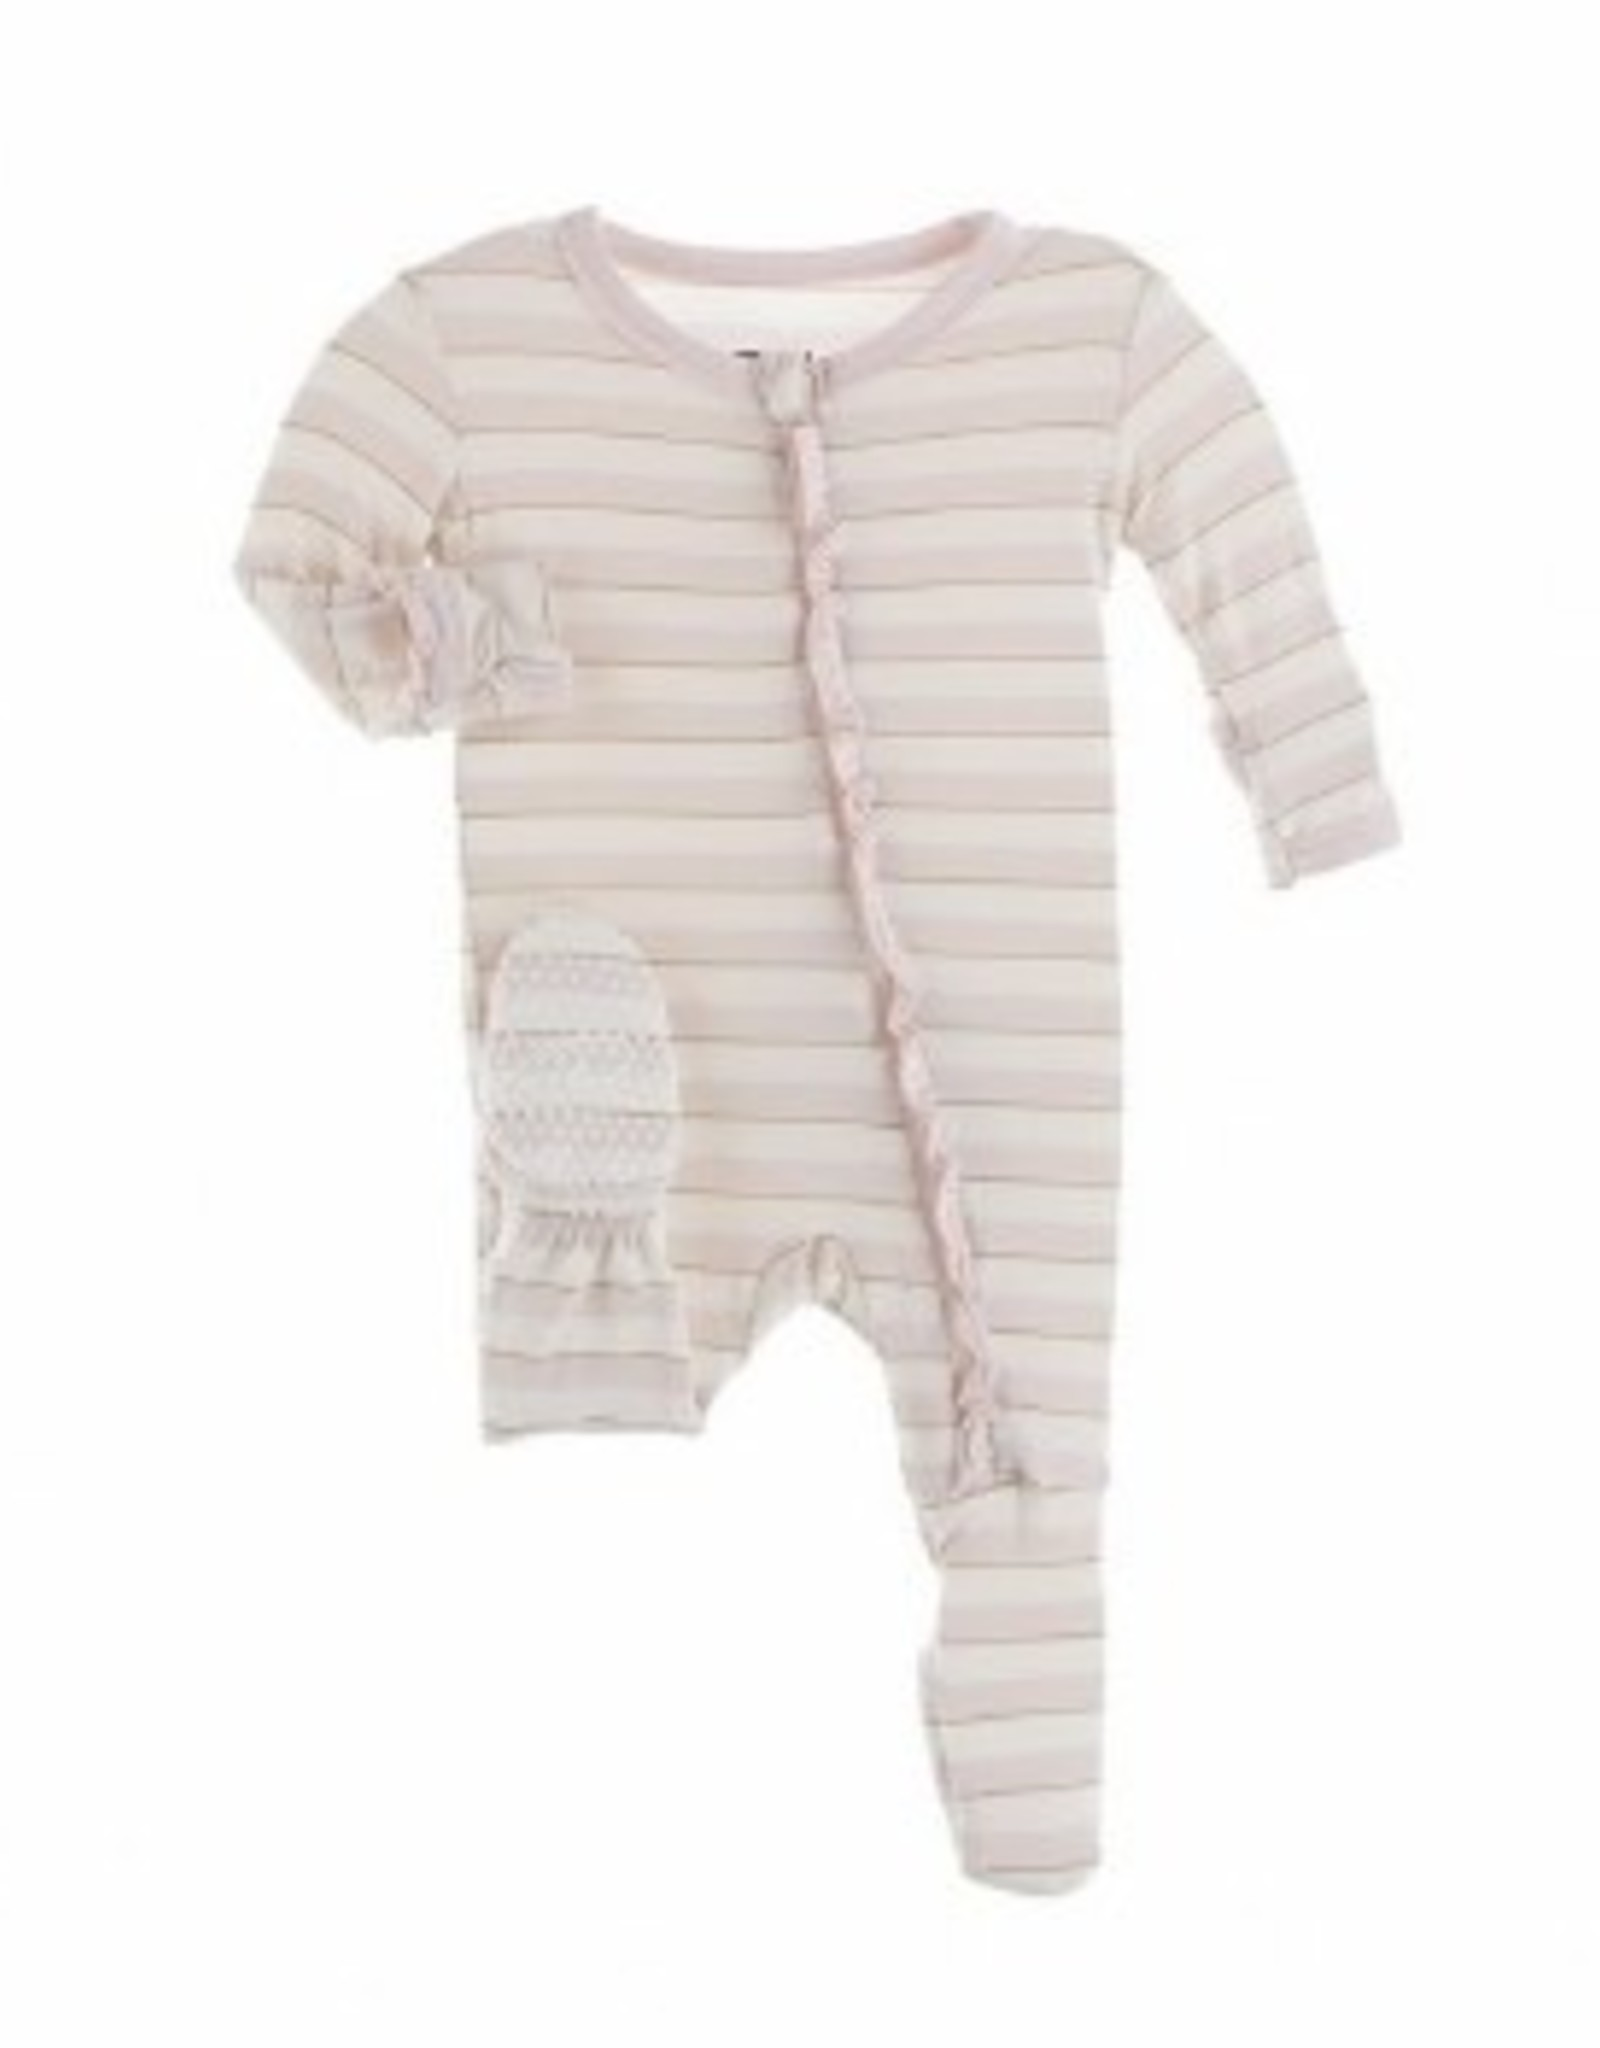 Kic Kee Pants Muffin Ruffle Footie - Sweet Stripe